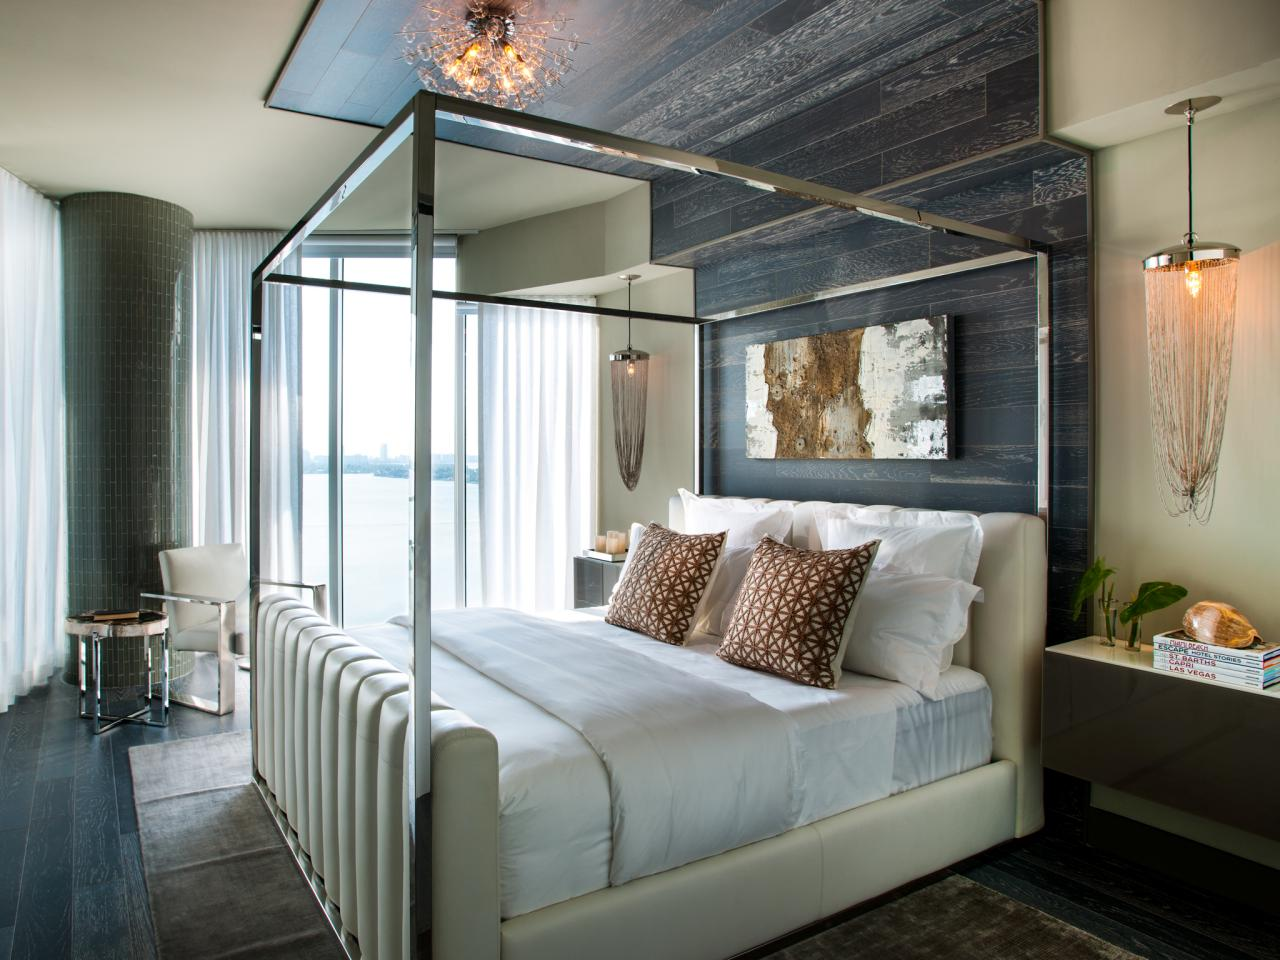 HGTV Urban Oasis 2012 Master Bedroom Pictures HGTV